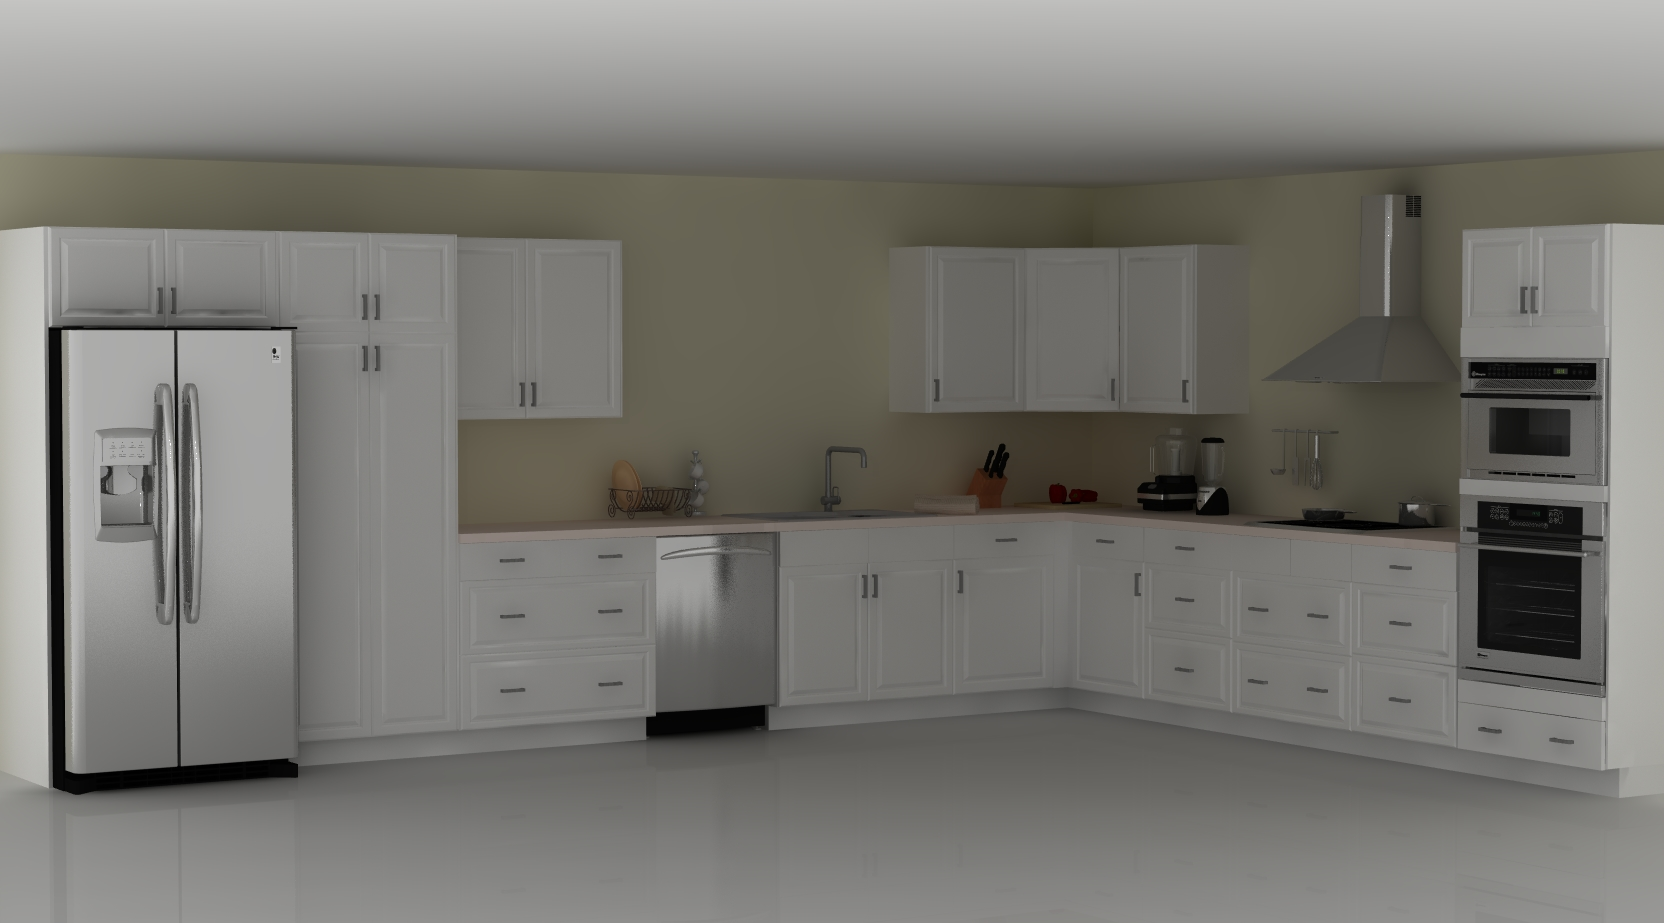 L Shaped Kitchen Layouts Ikea Kitchen Designer Tips Pros And Cons Of An Lshaped Layout